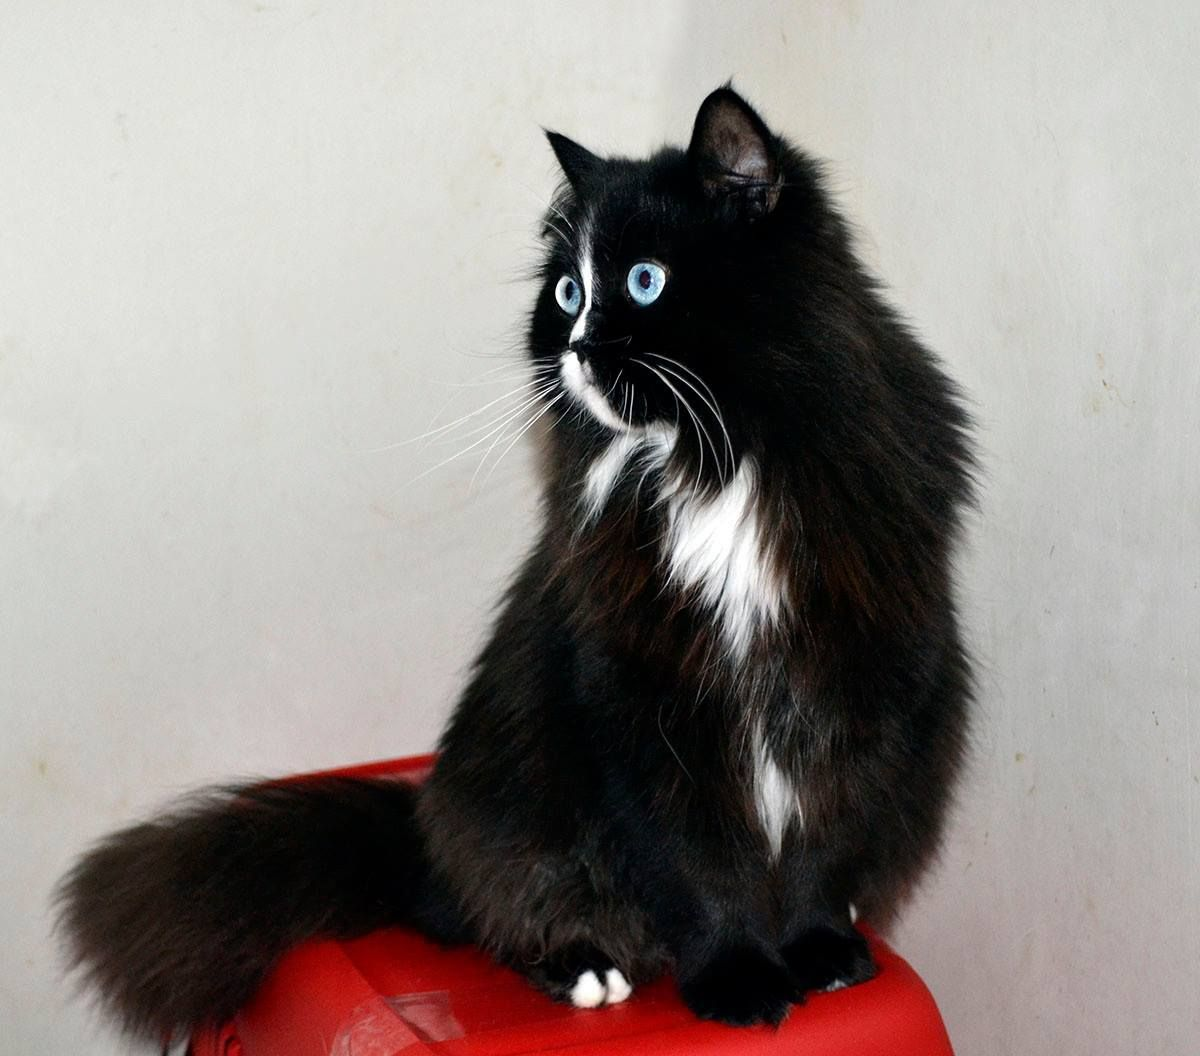 Pin By Alison Miller On Cute Animals Cat With Blue Eyes Cute Animals Cat Breeds